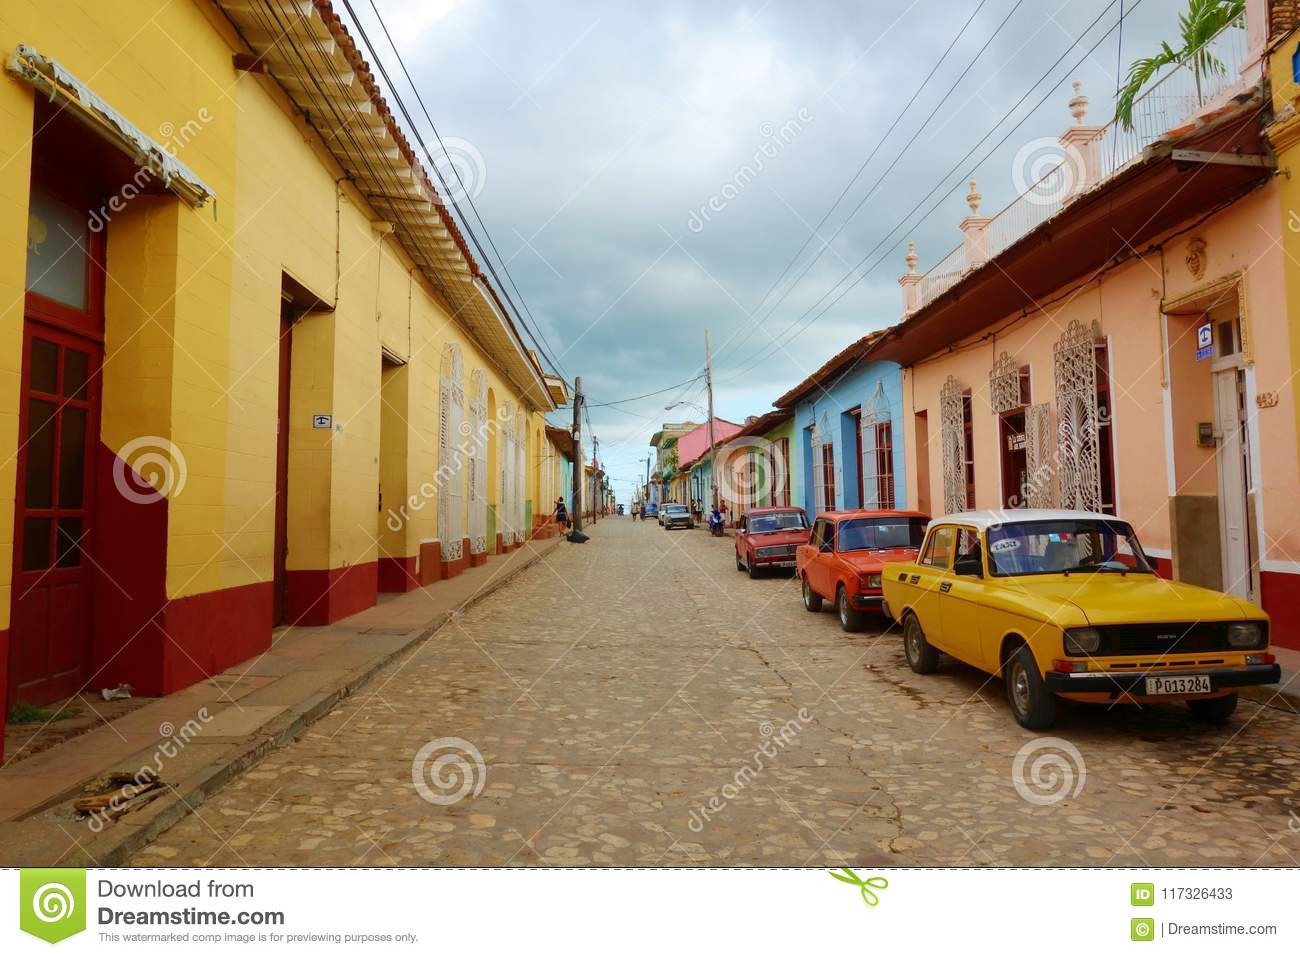 Colorful traditional houses in the colonial town of Trinidad in Cuba, a UNESCO World Heritage site